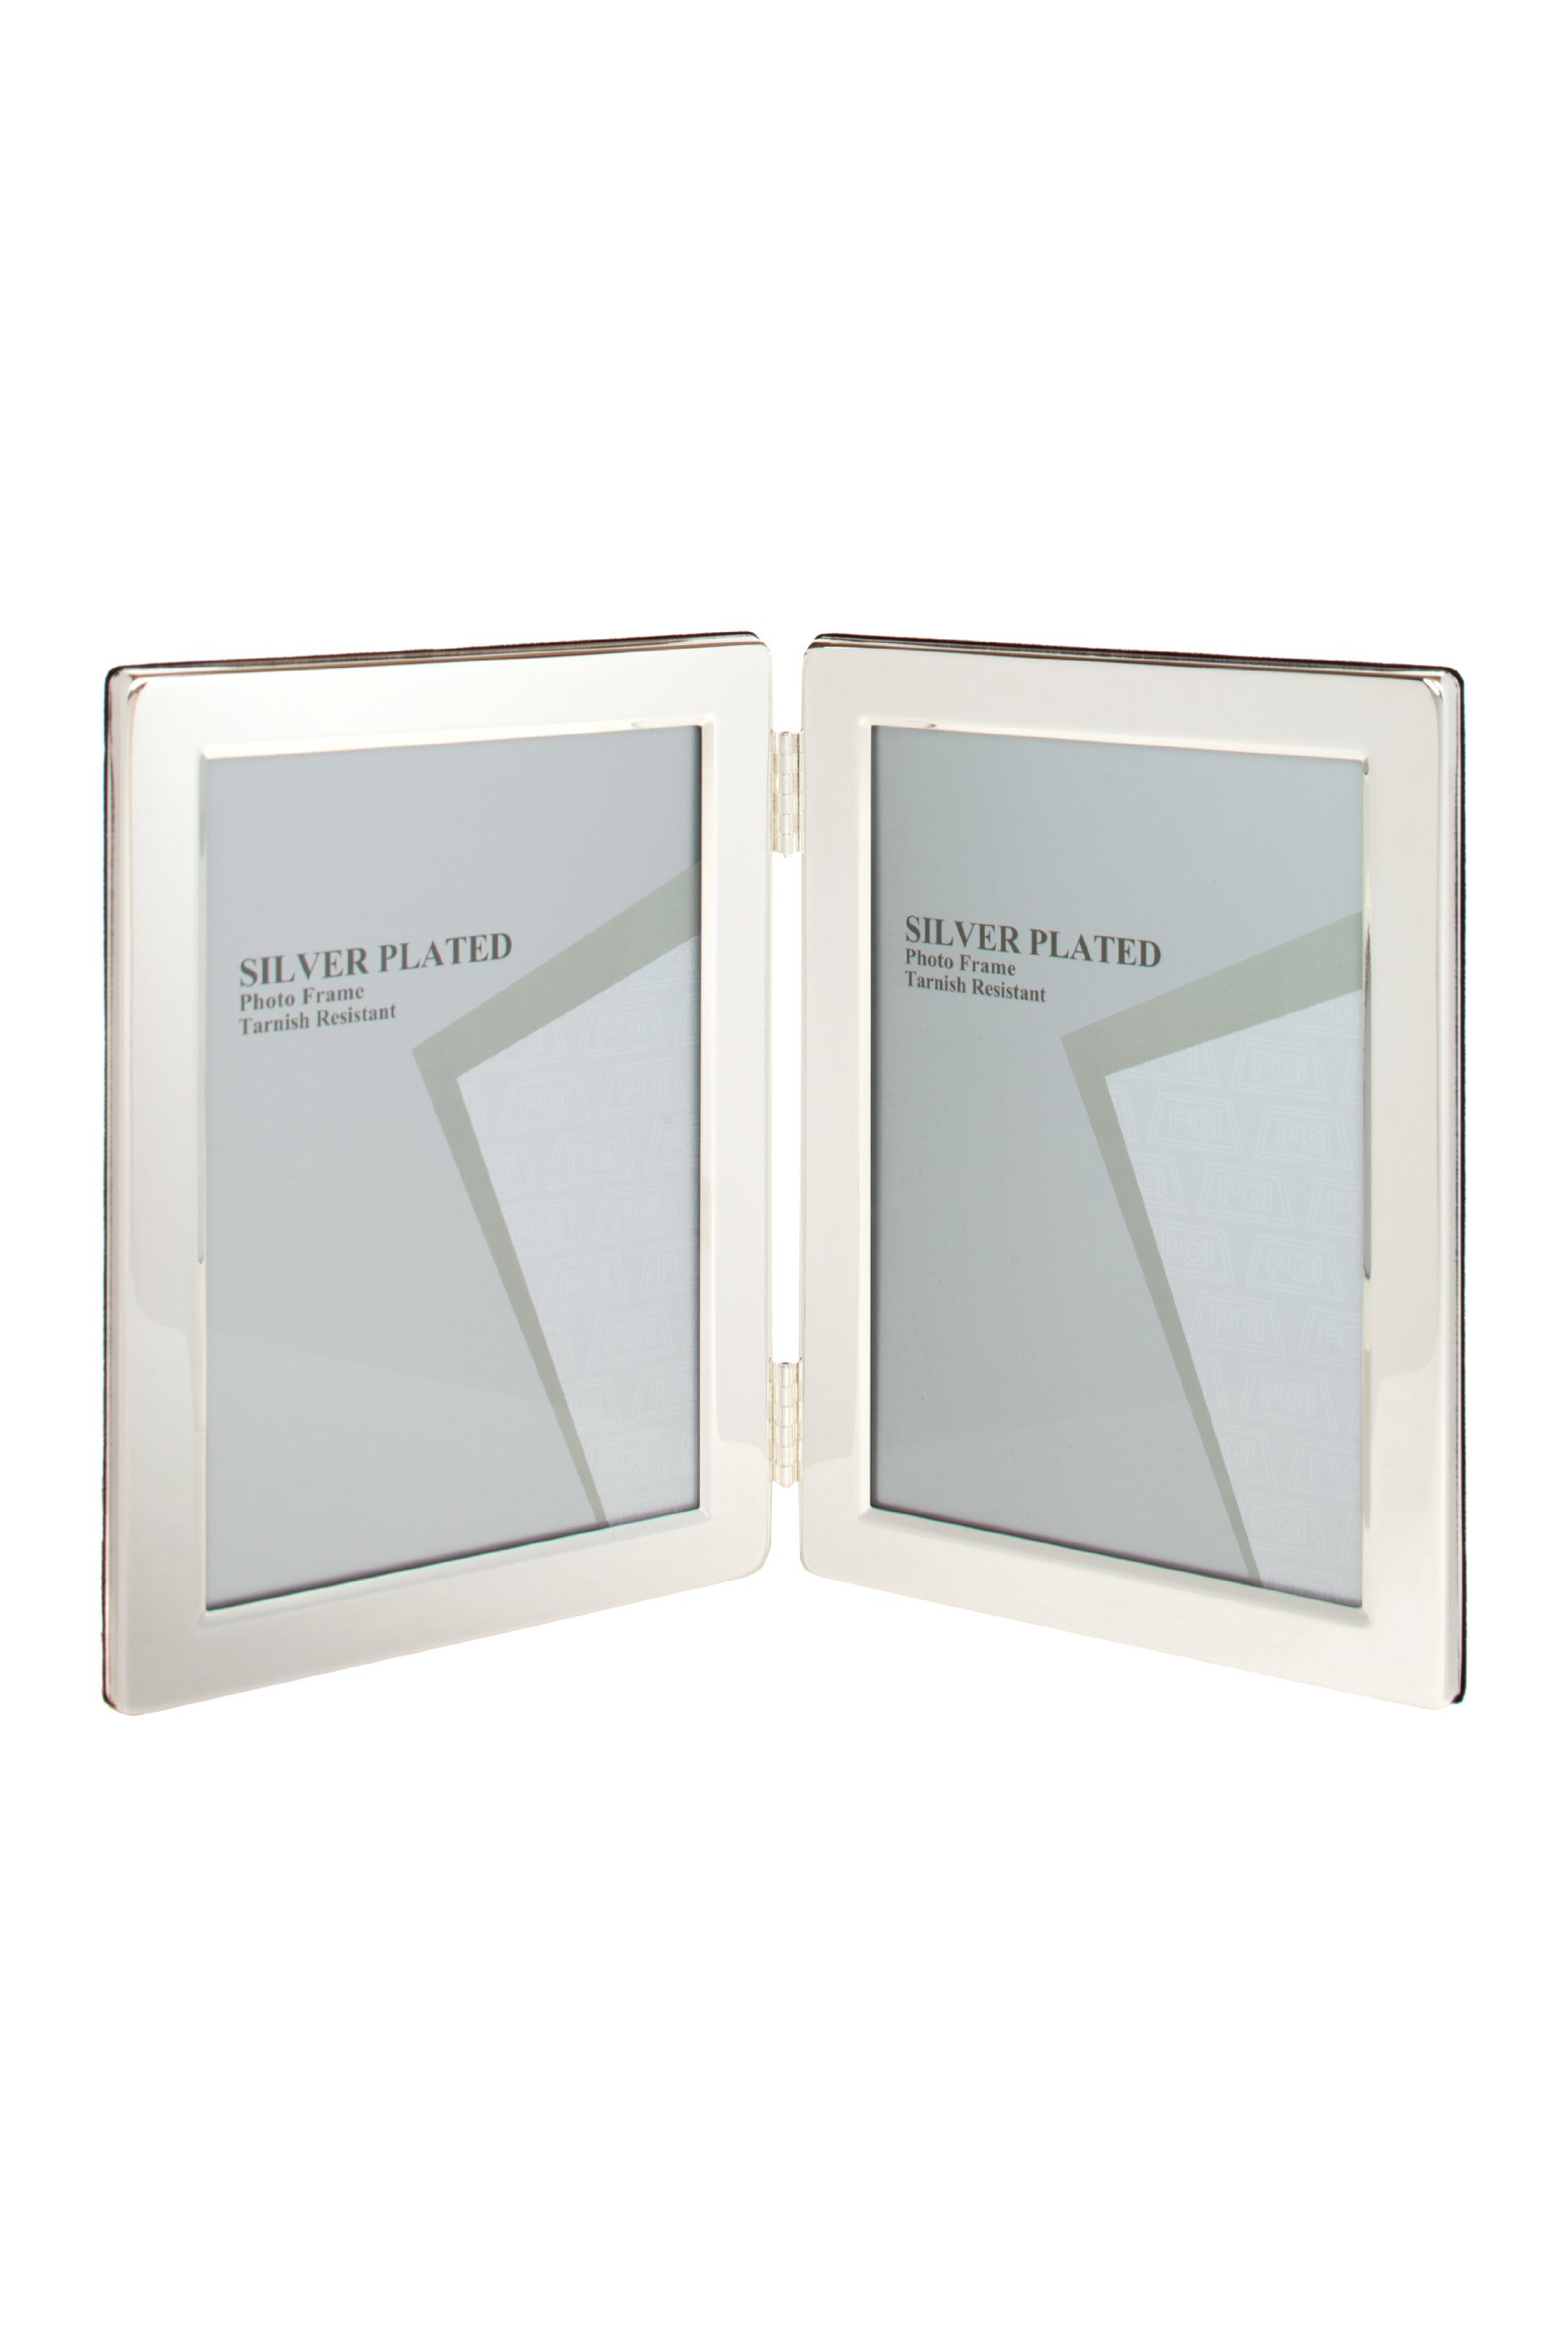 Viceni Silver Plated Double Aperture Picture Photo Frame, 2.5 by 3.5-Inch by Viceni